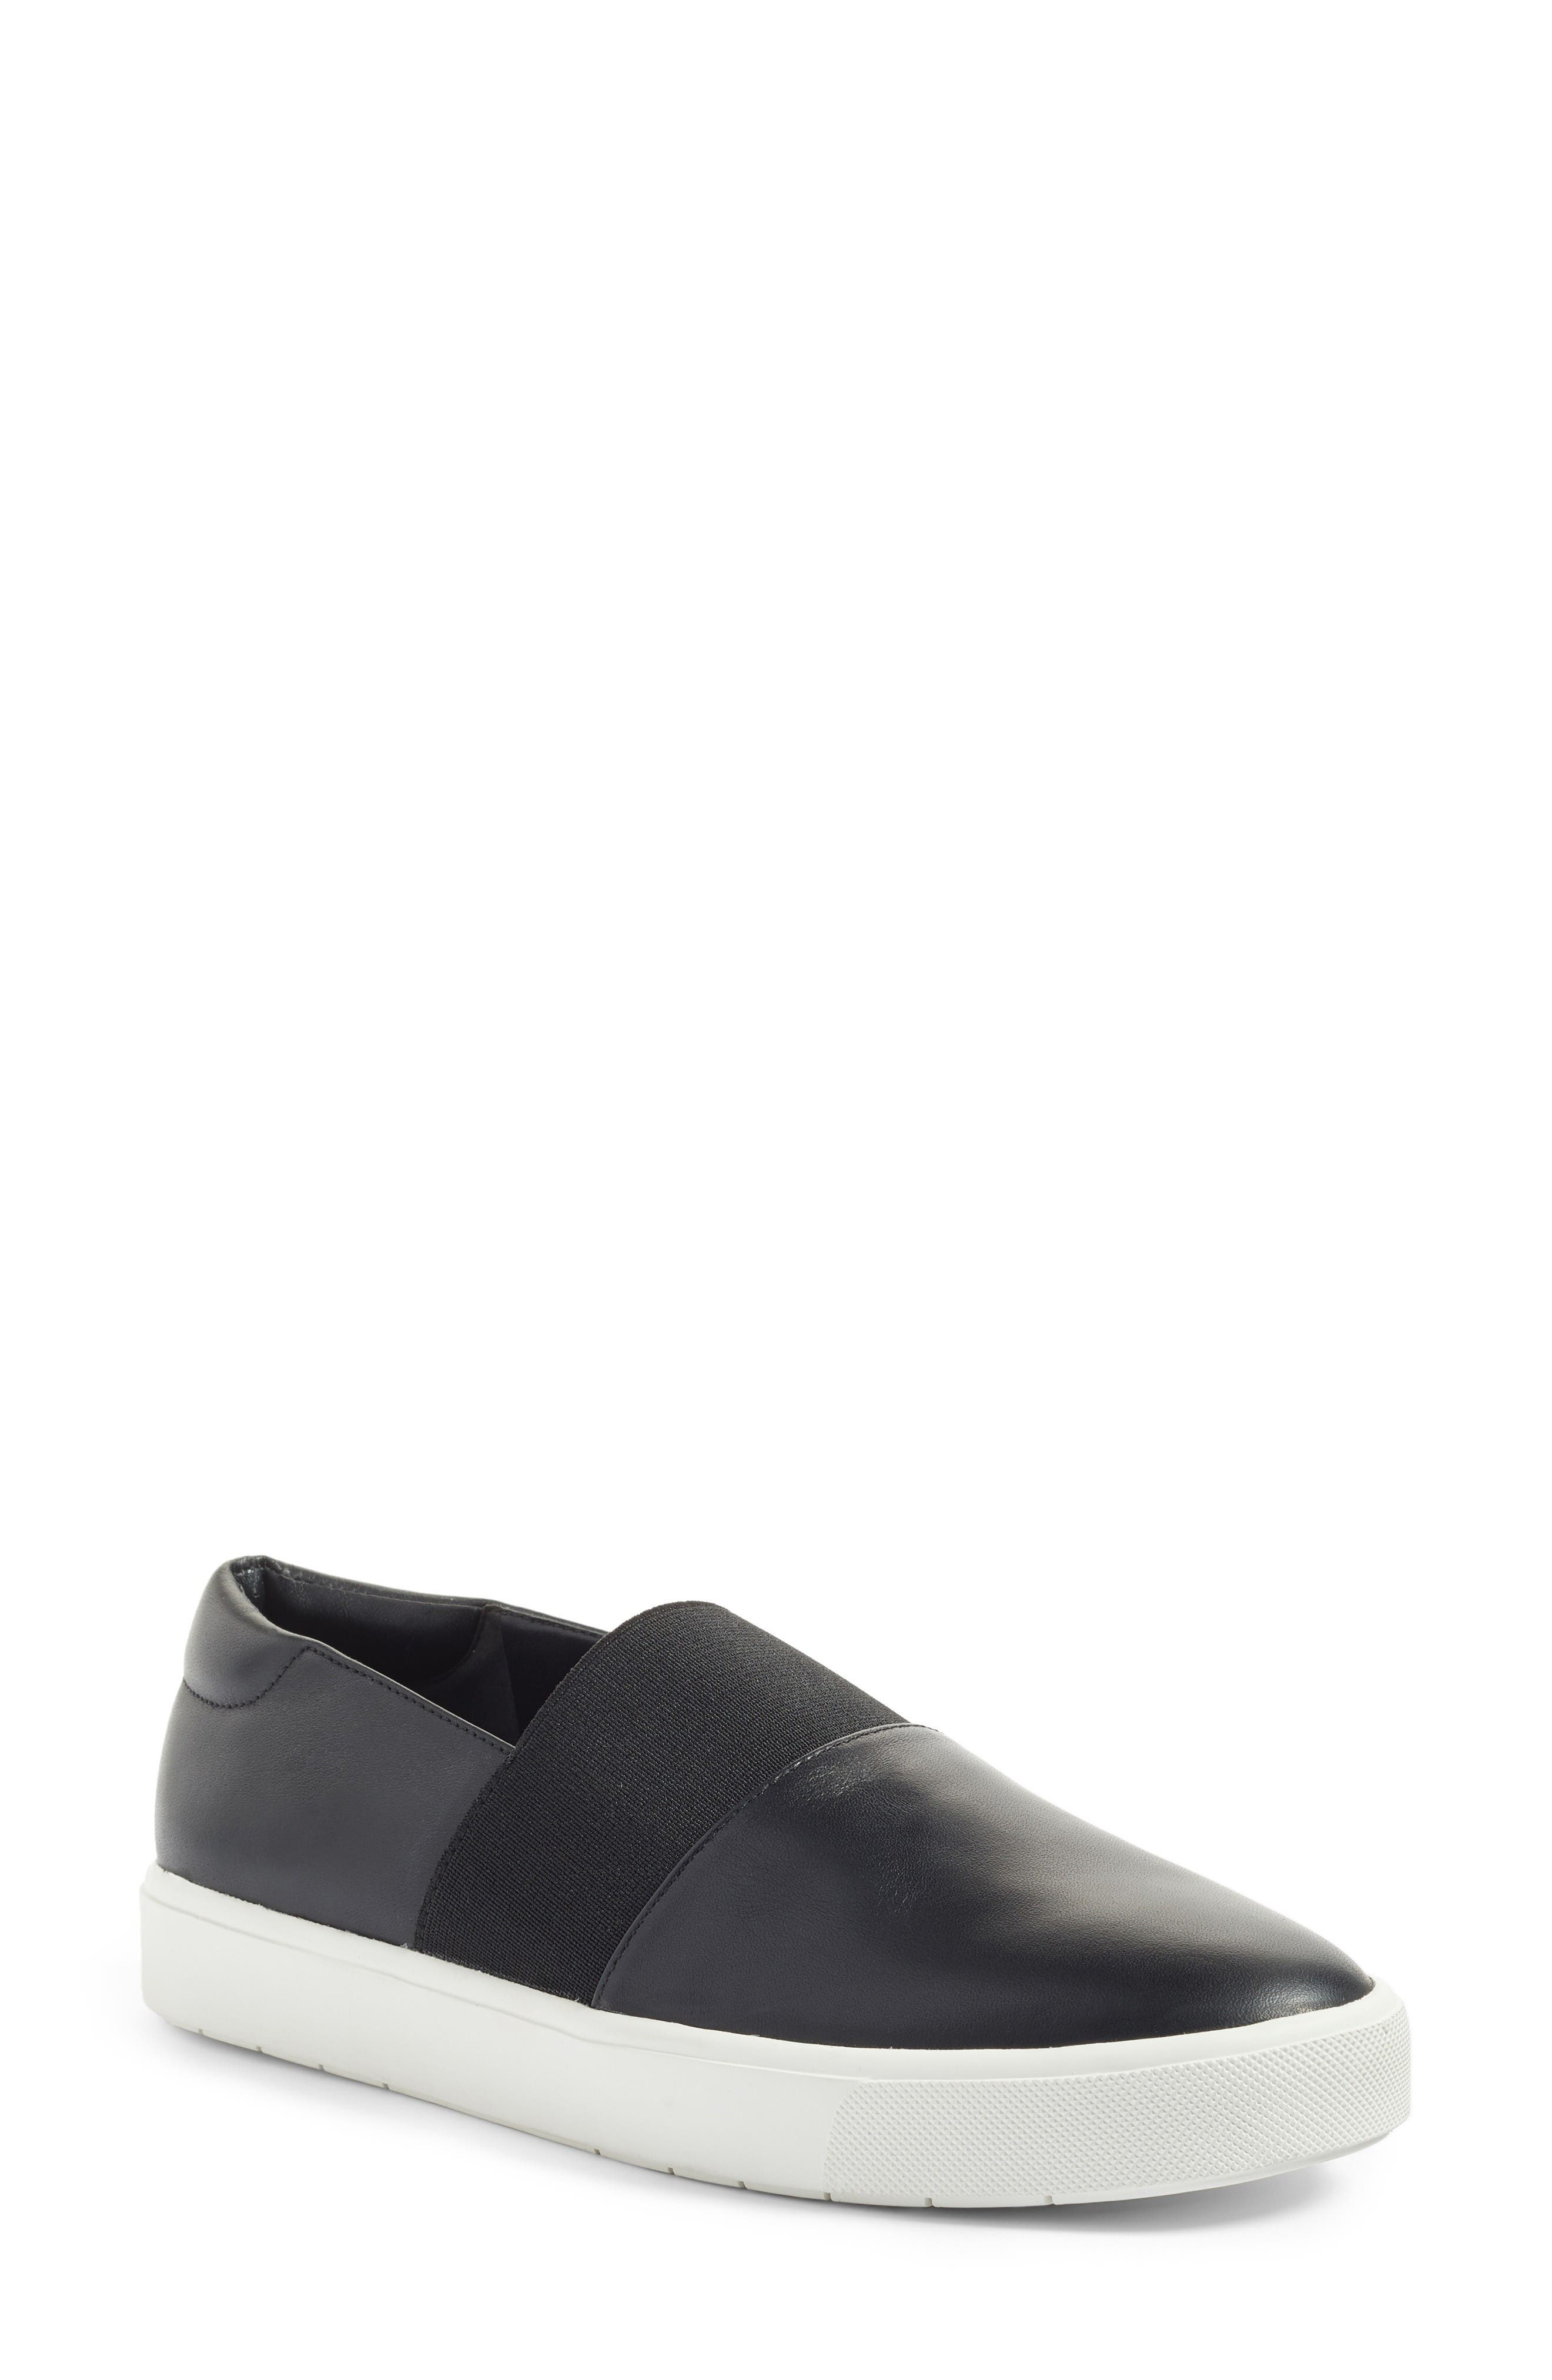 Alternate Image 1 Selected - Vince Corbin Slip-On Sneaker (Women)